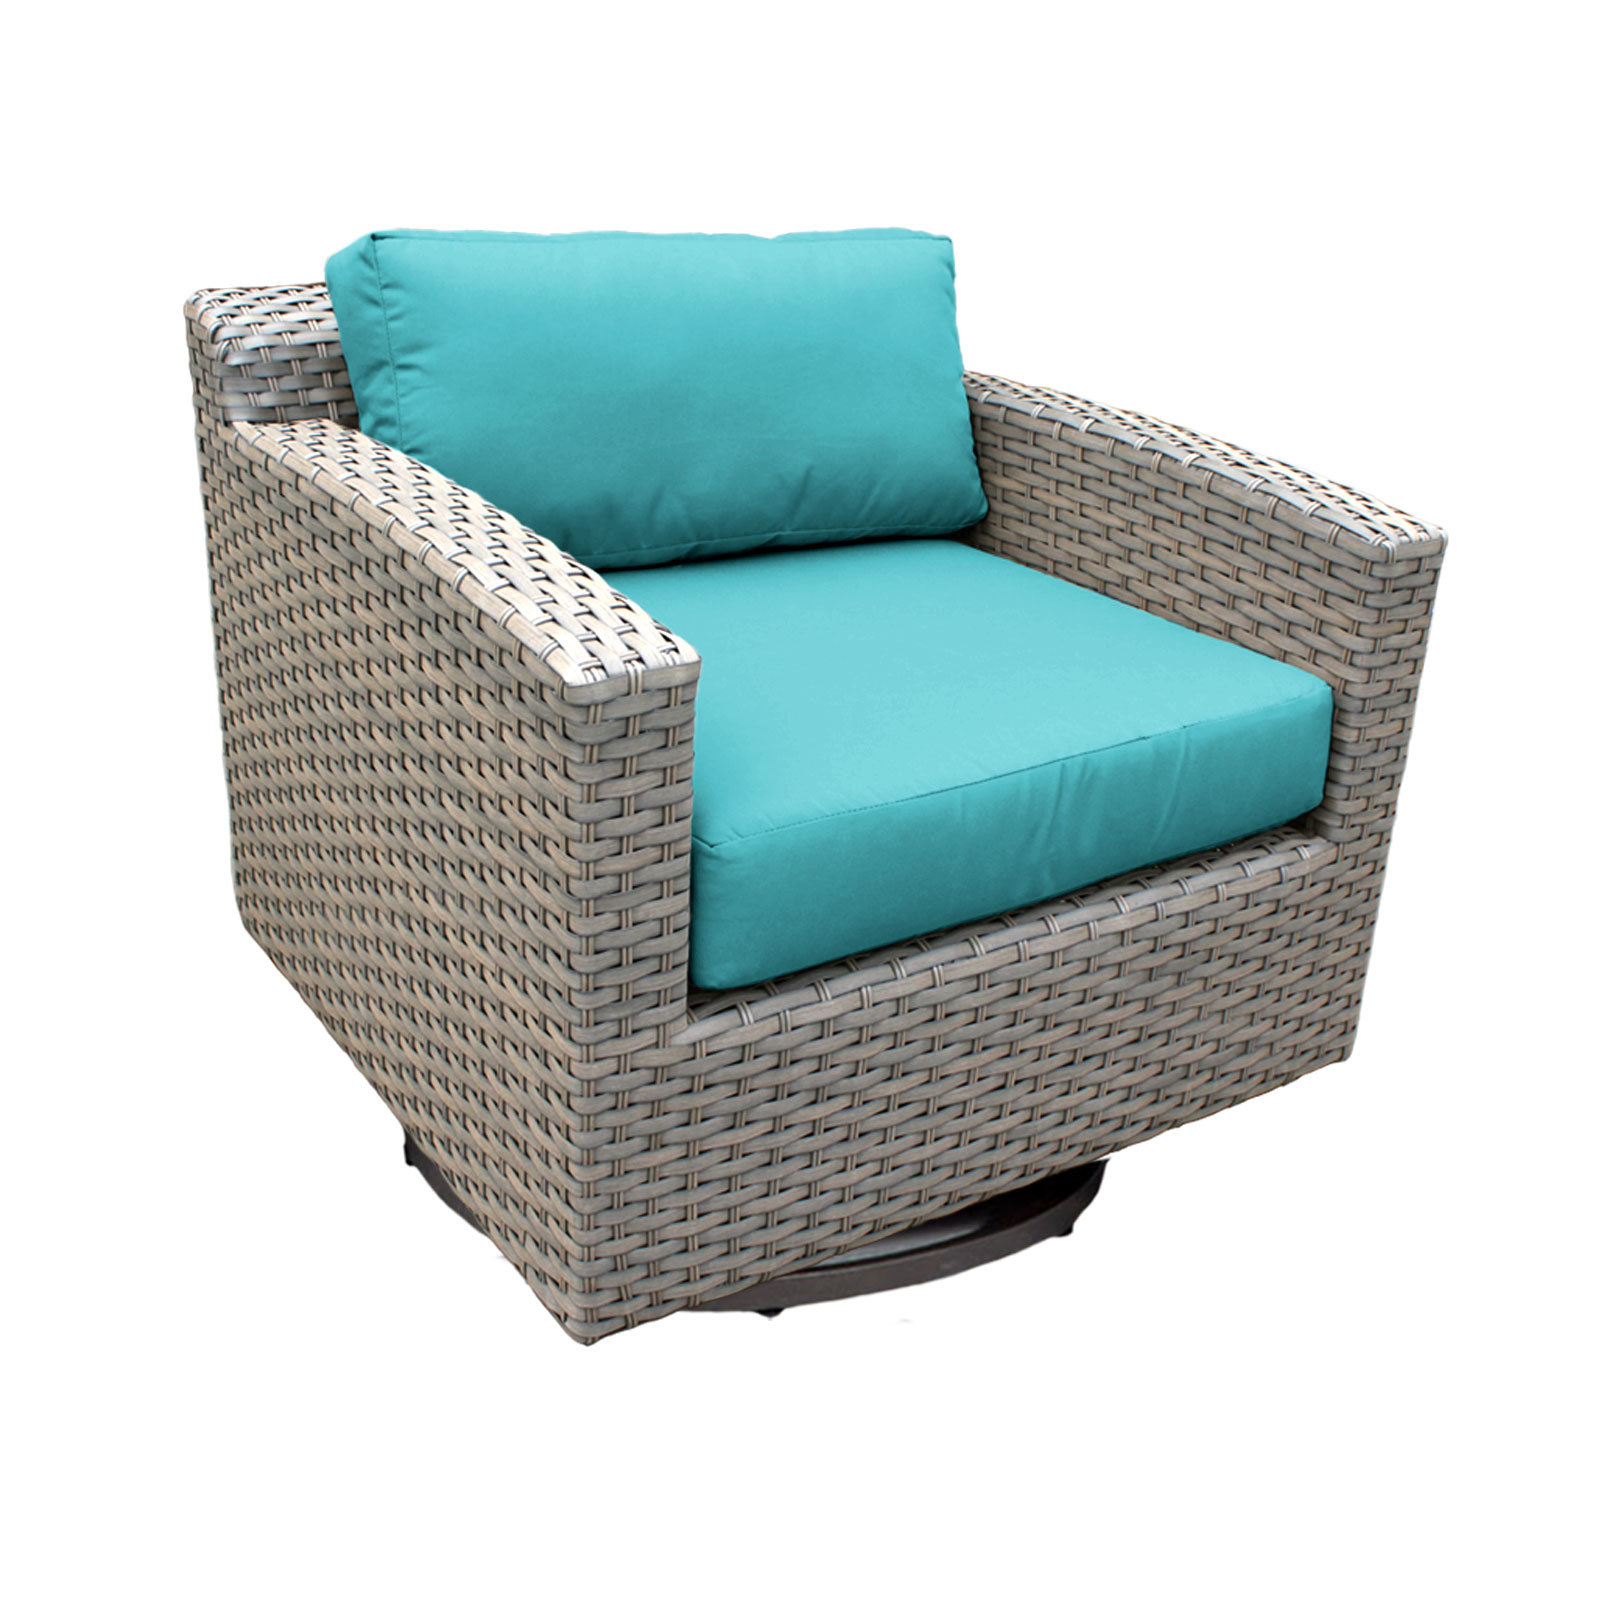 2020 Meeks Swivel Patio Chair With Cushions With Regard To Meeks Patio Sofas With Cushions (View 5 of 20)